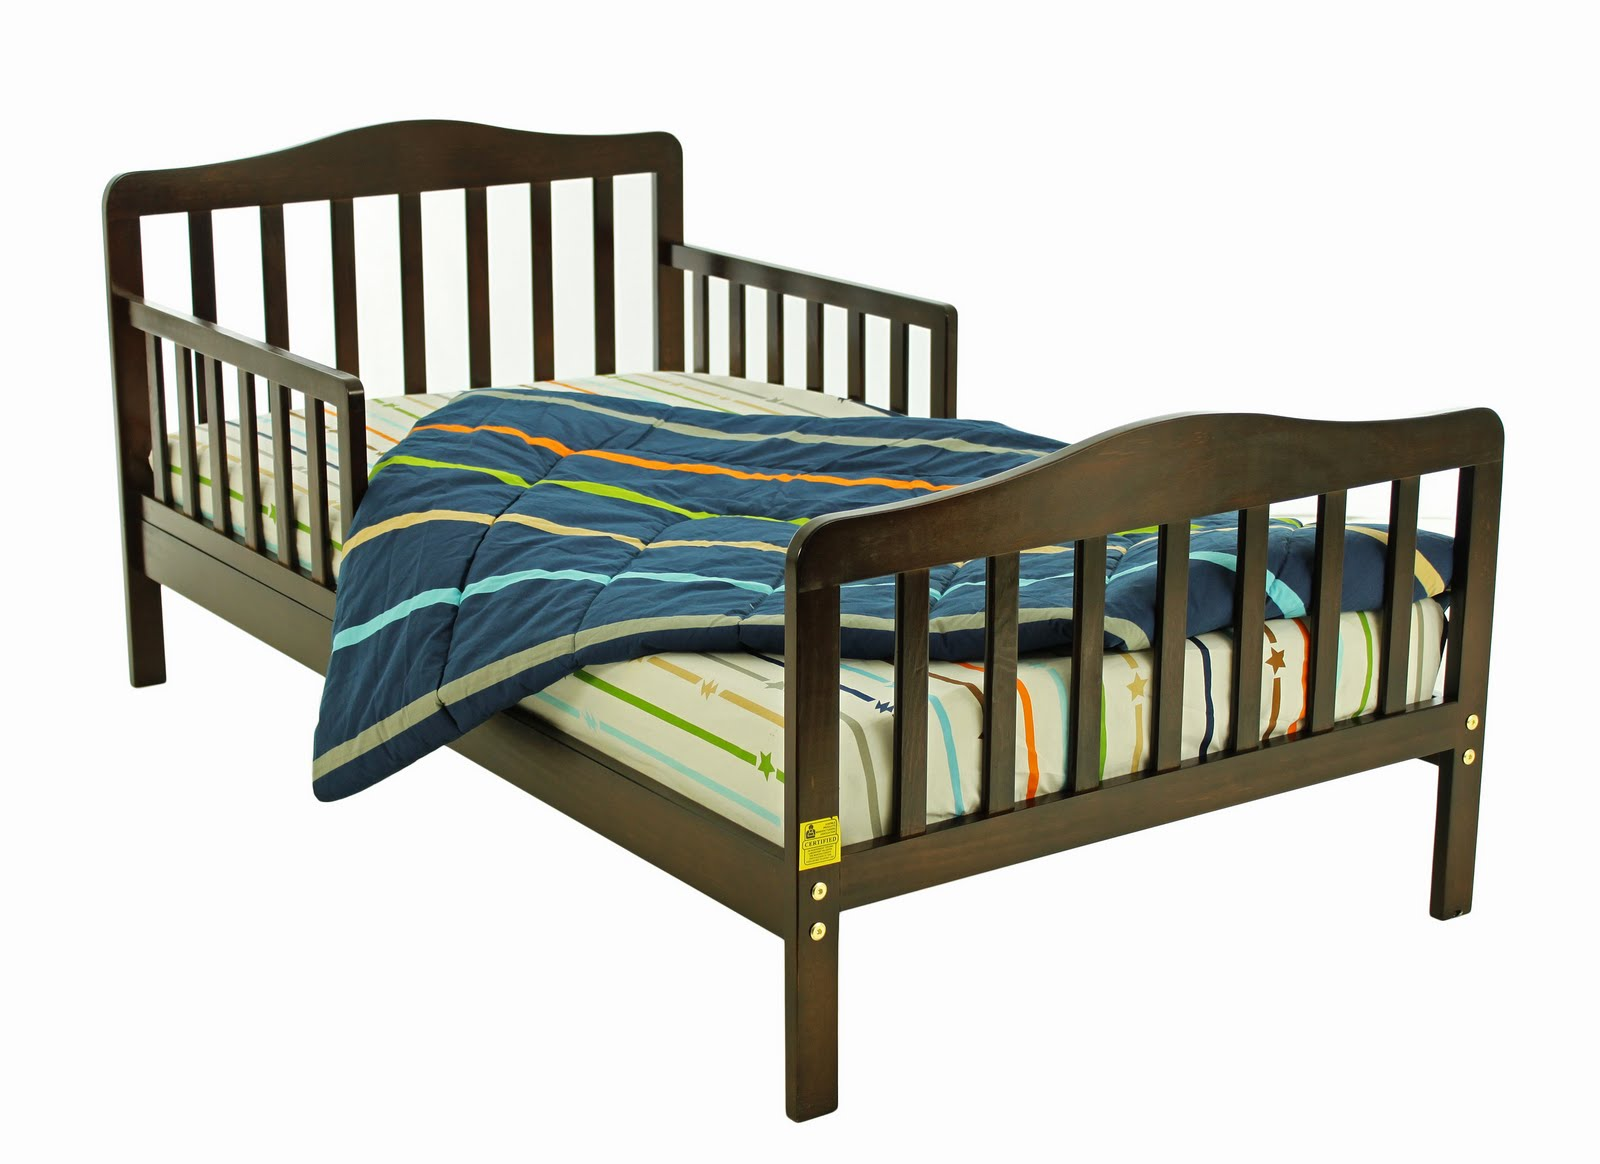 Toddler Bed Rails Munchkin Toddler Bed Rail Instructions